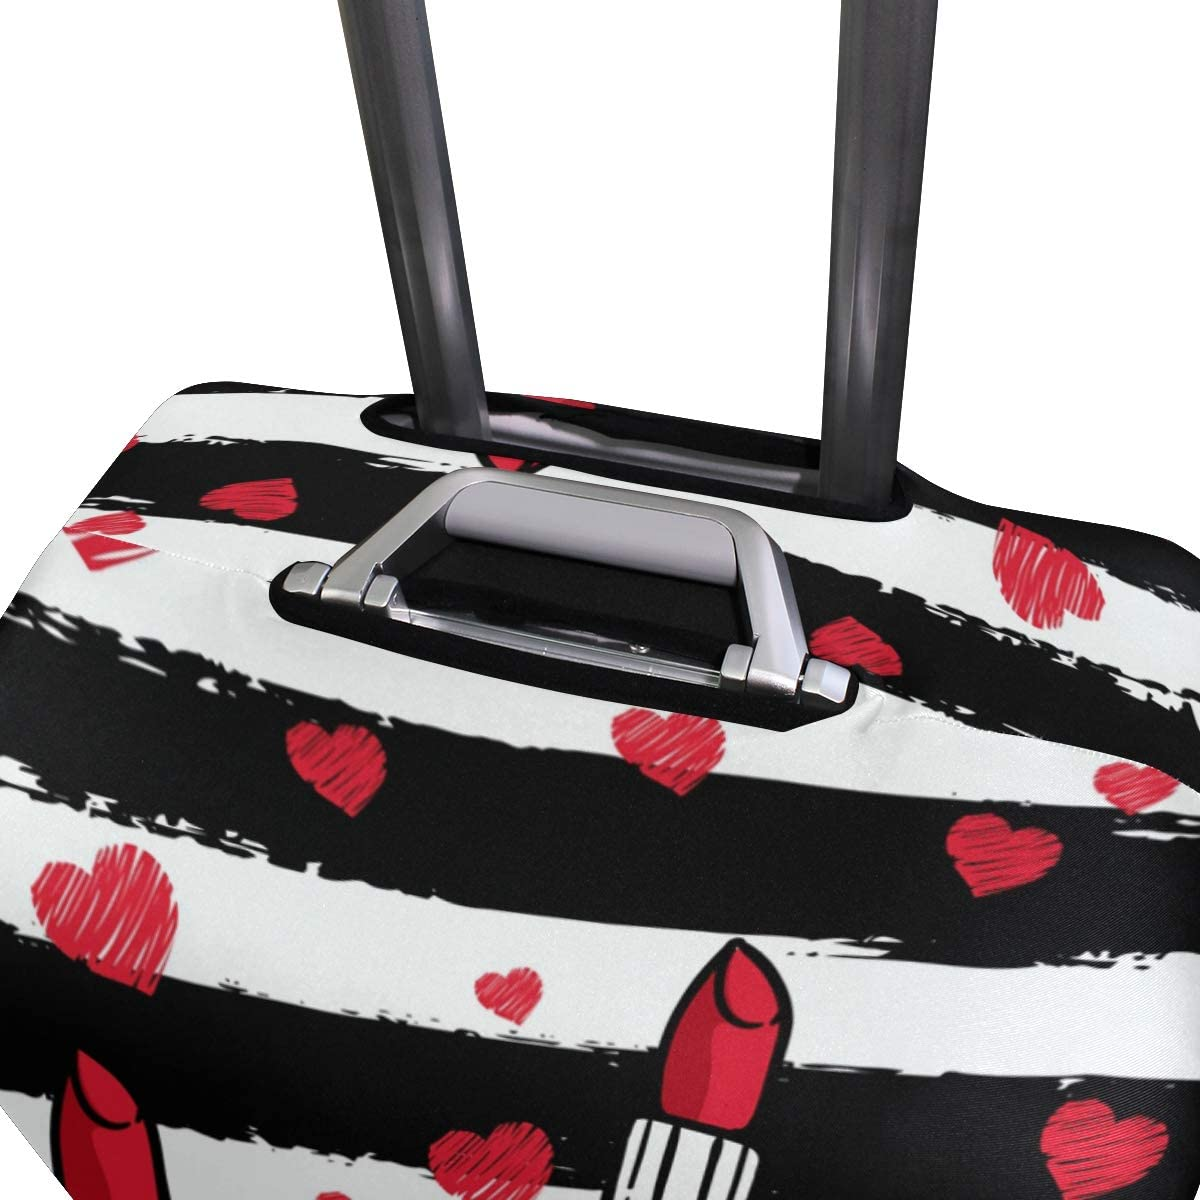 Travel Luggage Cover Lady Red Lipsticks Black White Stripes Suitcase Protector